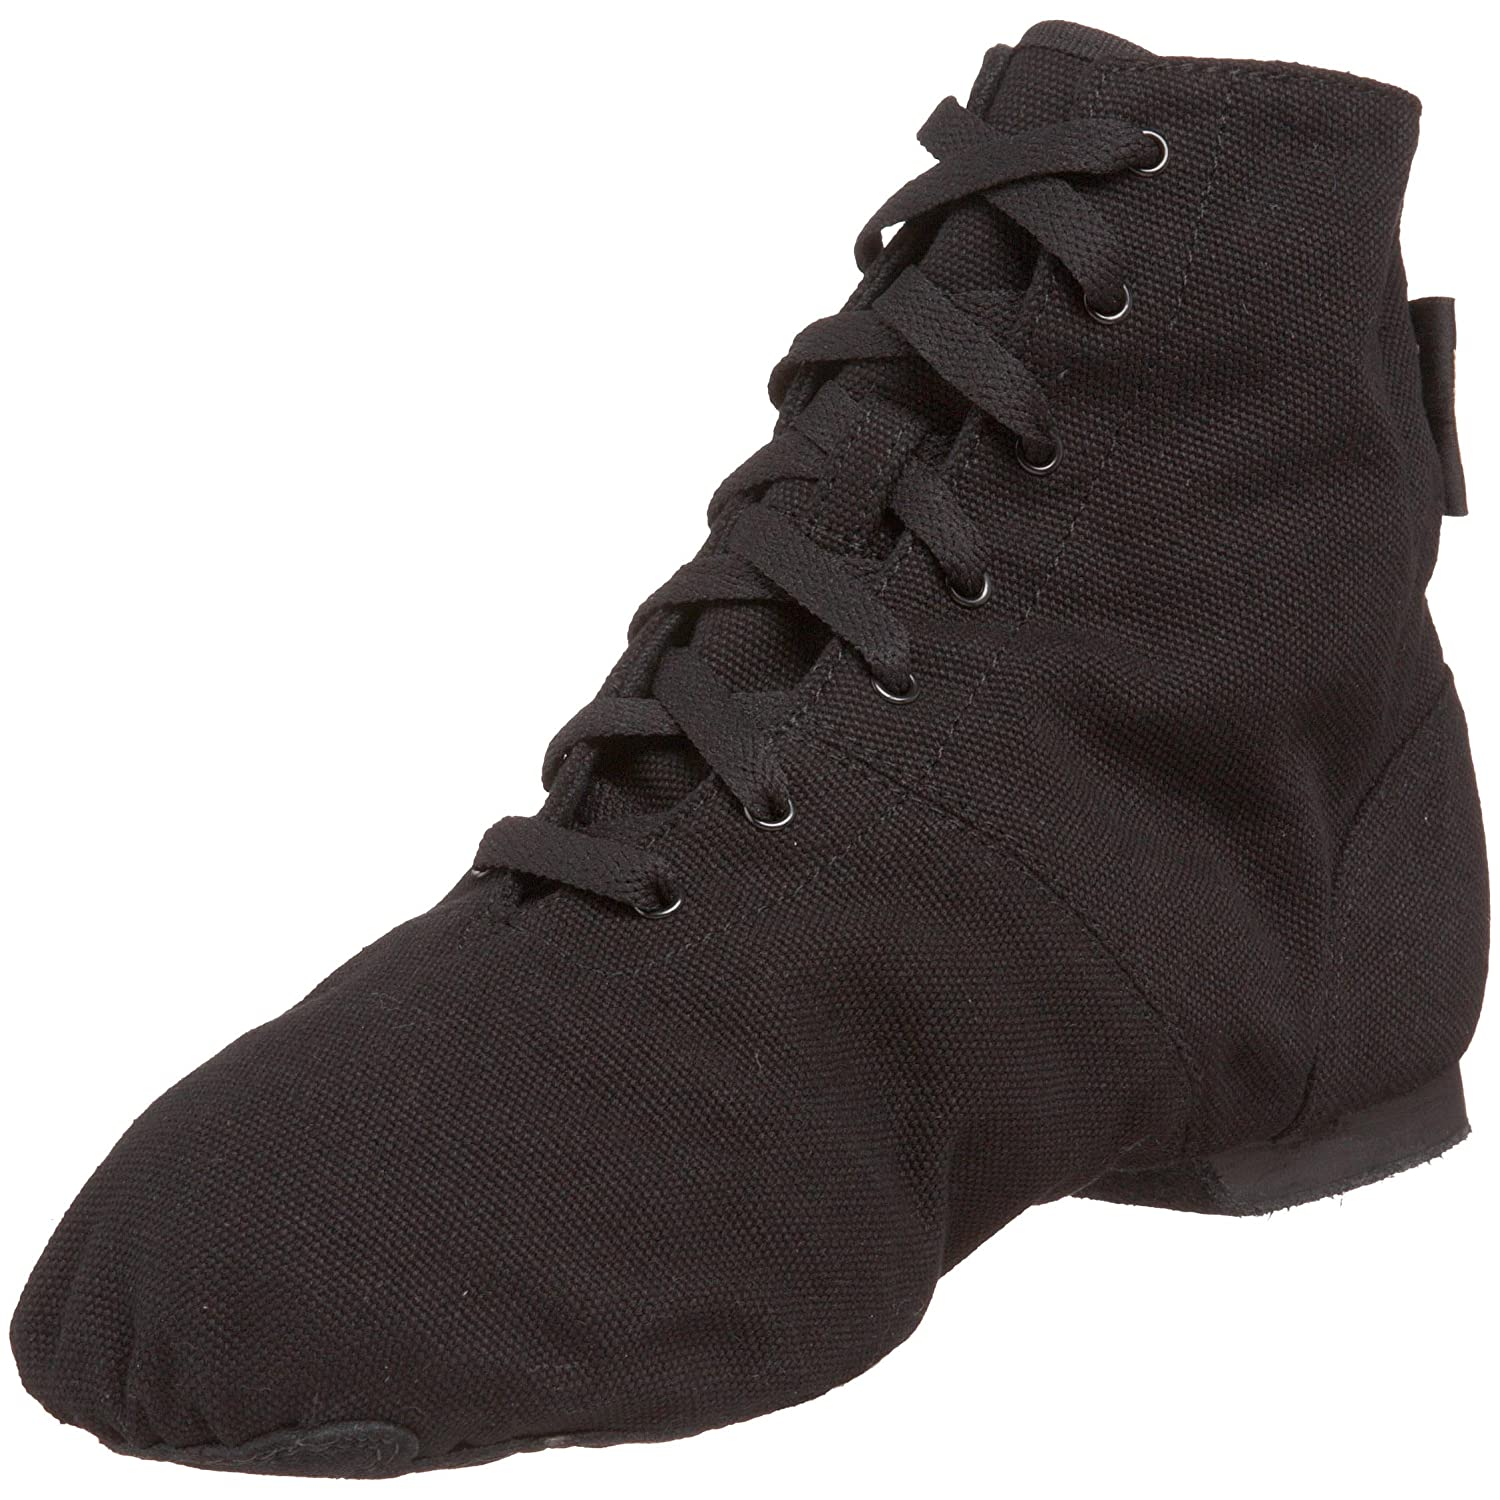 Ladies Victorian Boots & Shoes Sansha Soho Lace-Up Jazz Shoe $36.55 AT vintagedancer.com